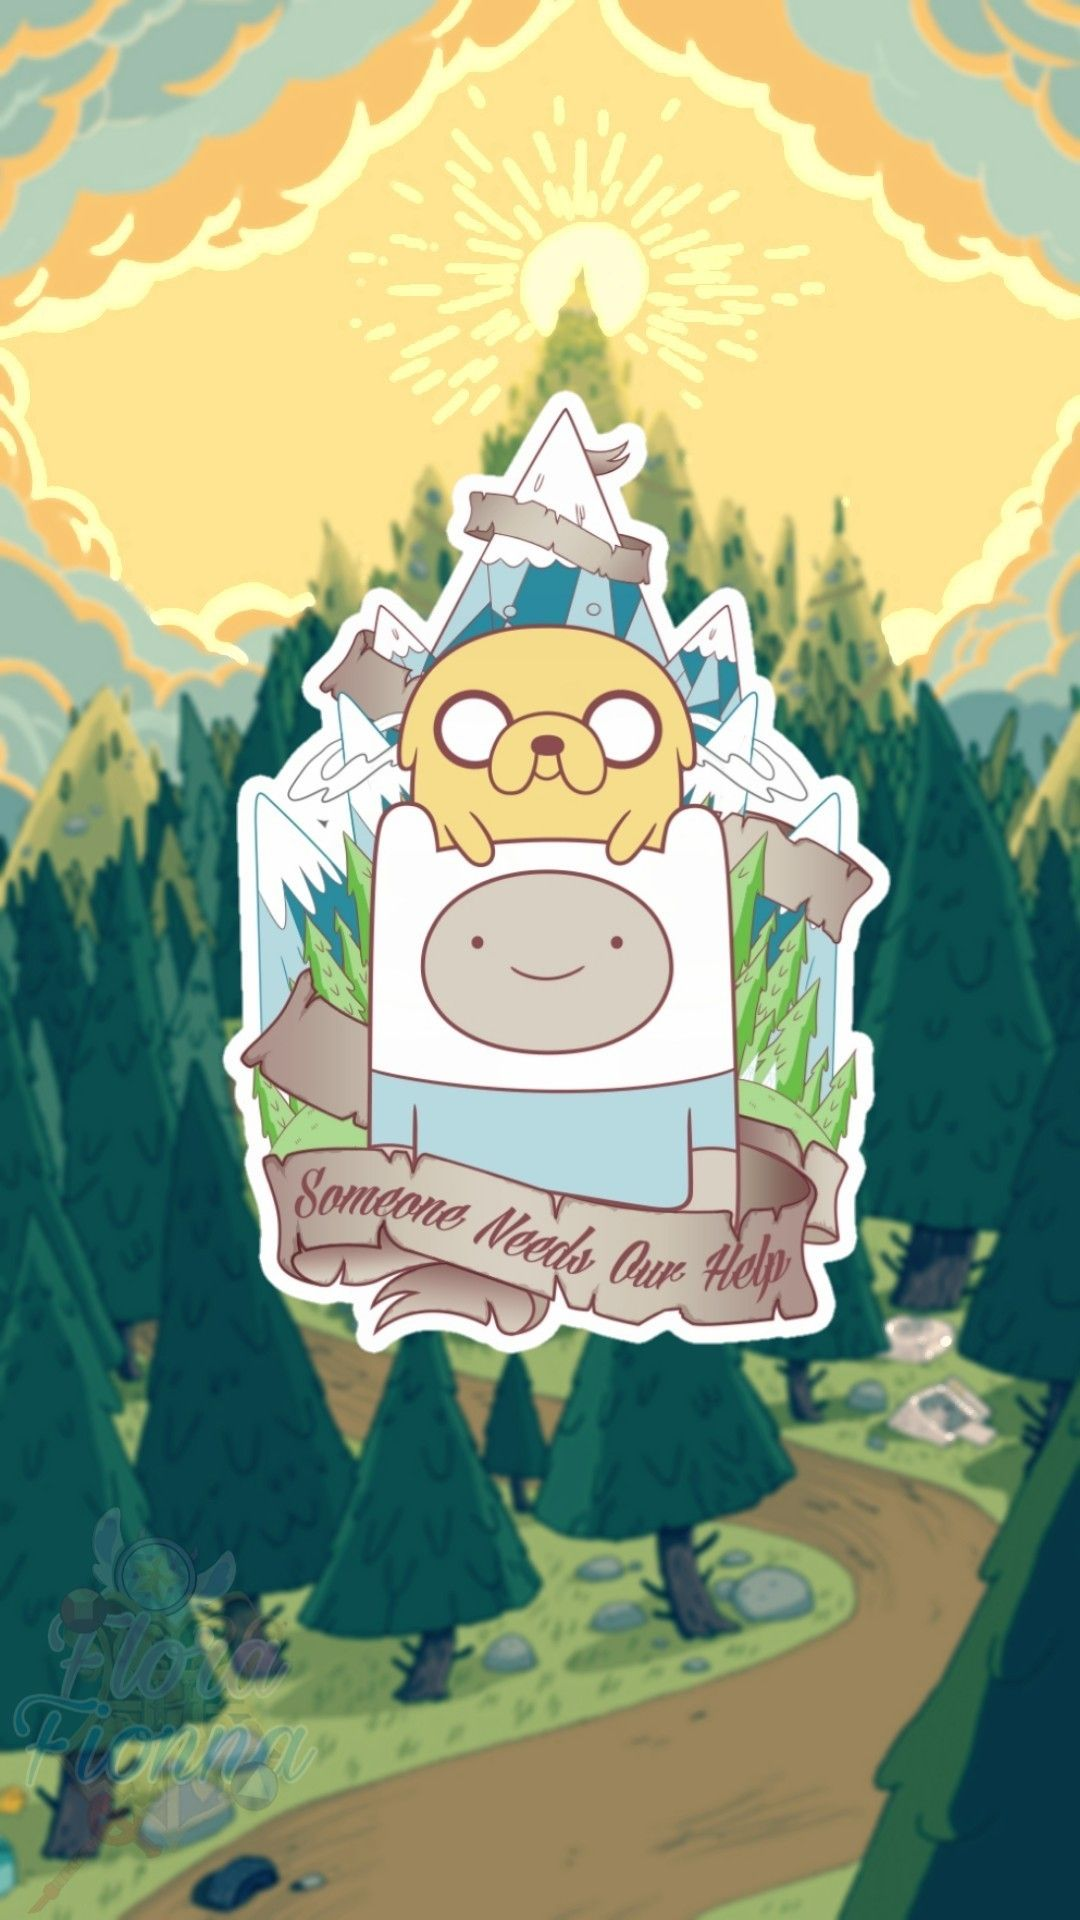 Adventure Time New Wallpapers Enjoy Them Adventuretime Adventure Time Wallpaper Adventure Time Iphone Wallpaper Cartoon Wallpaper Iphone